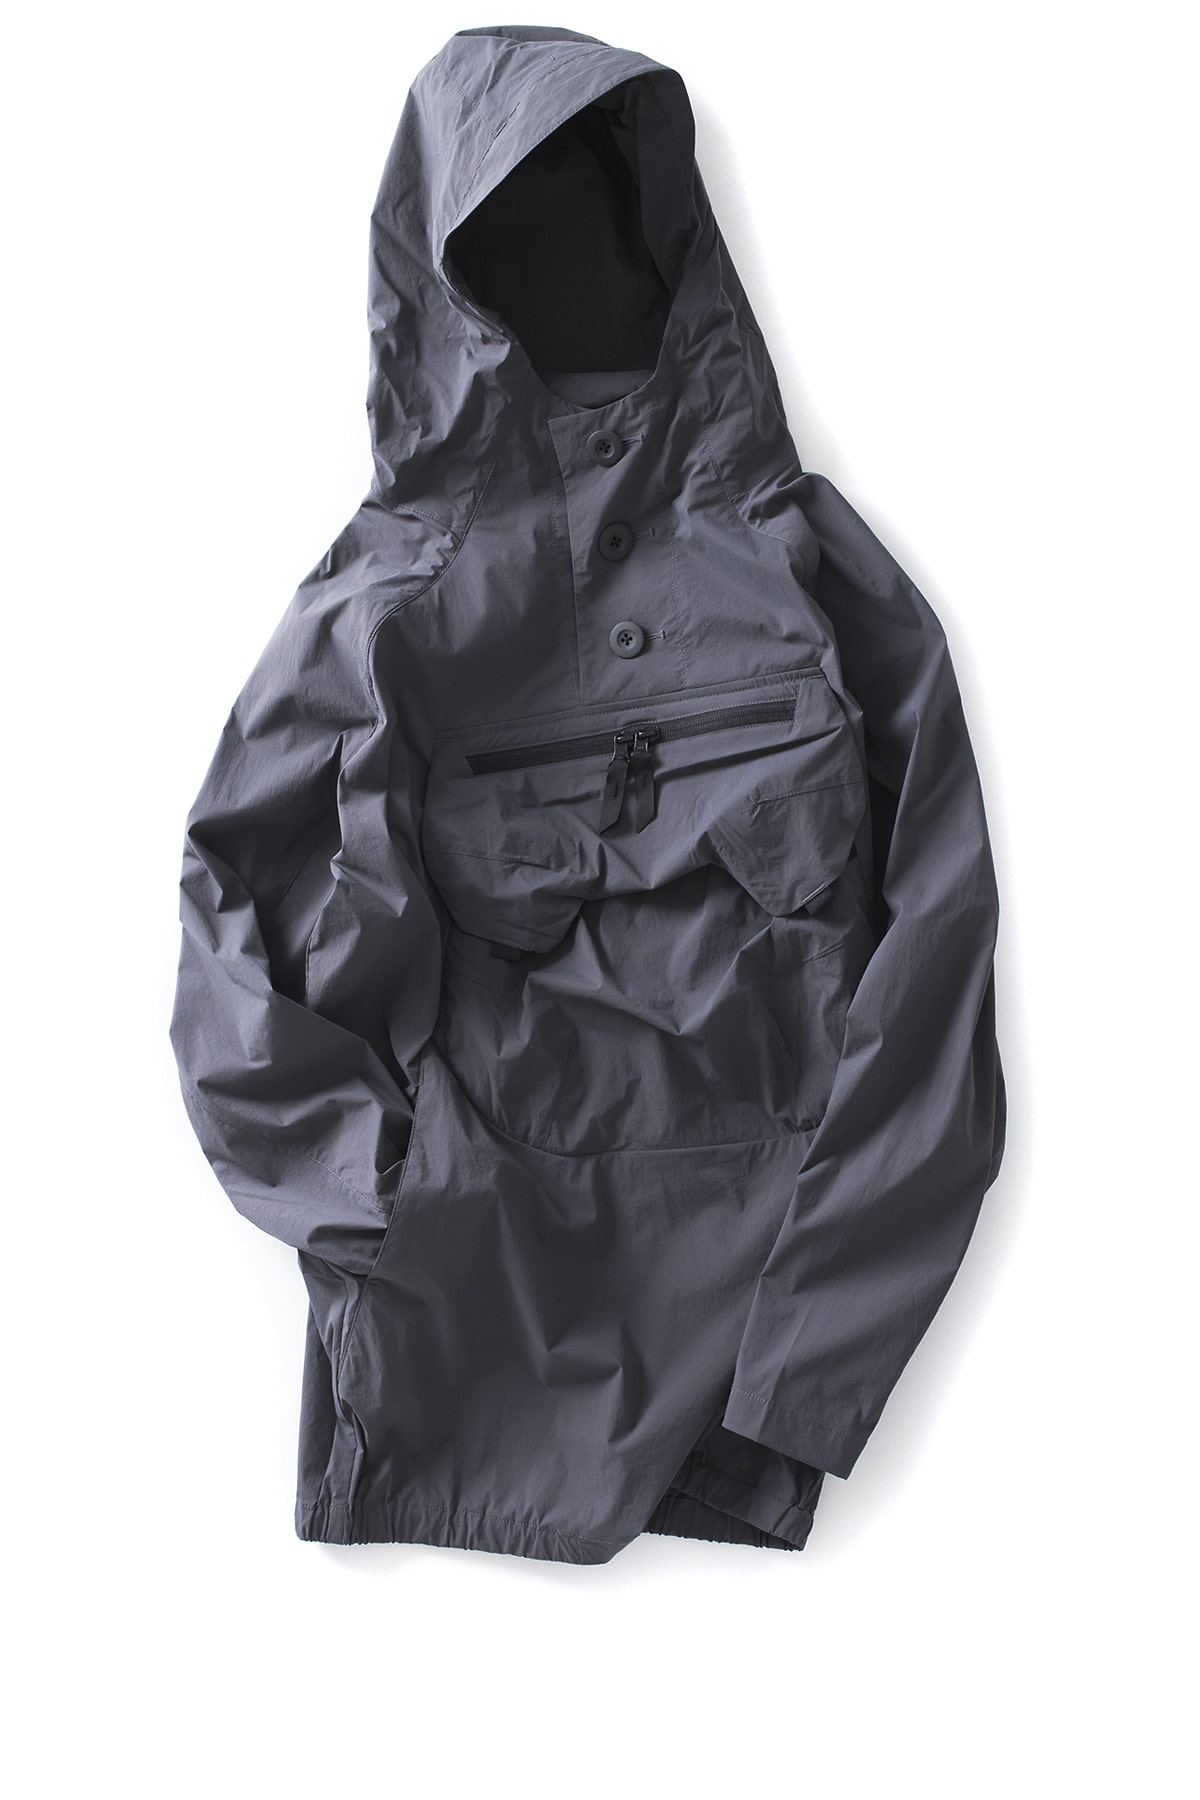 alk phenix : Zak Anorak / Karu Stretch (Charcoal Grey)